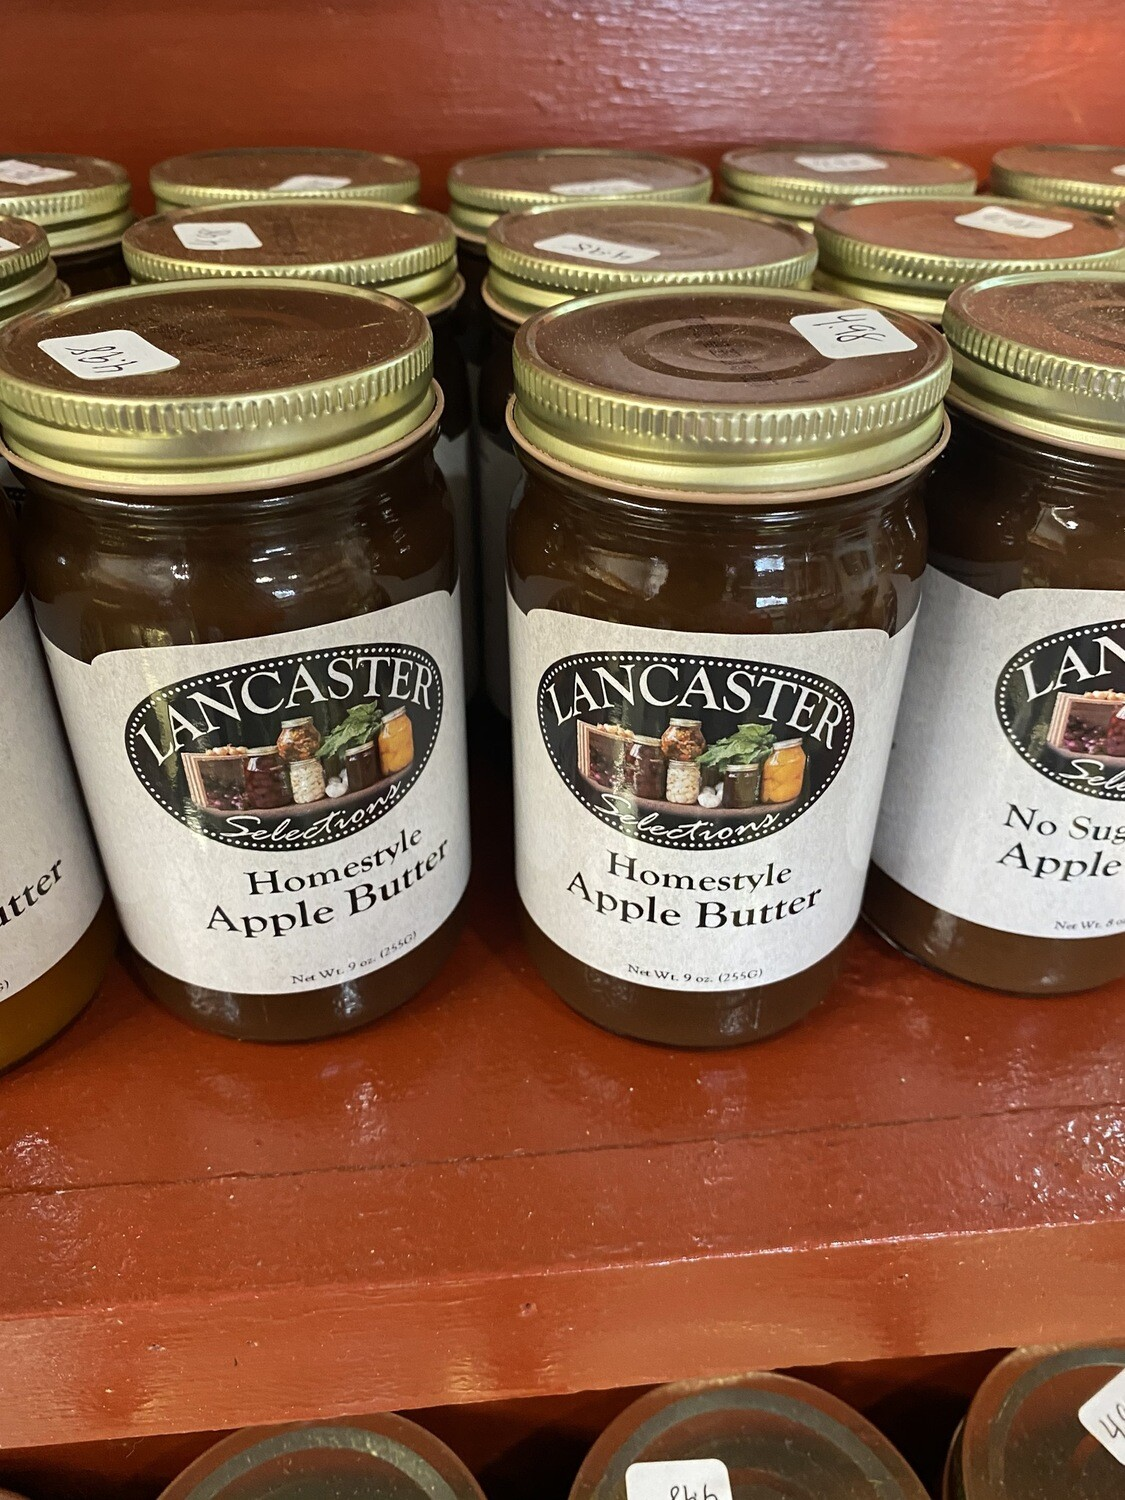 Homestyle Apple Butter 9 oz.